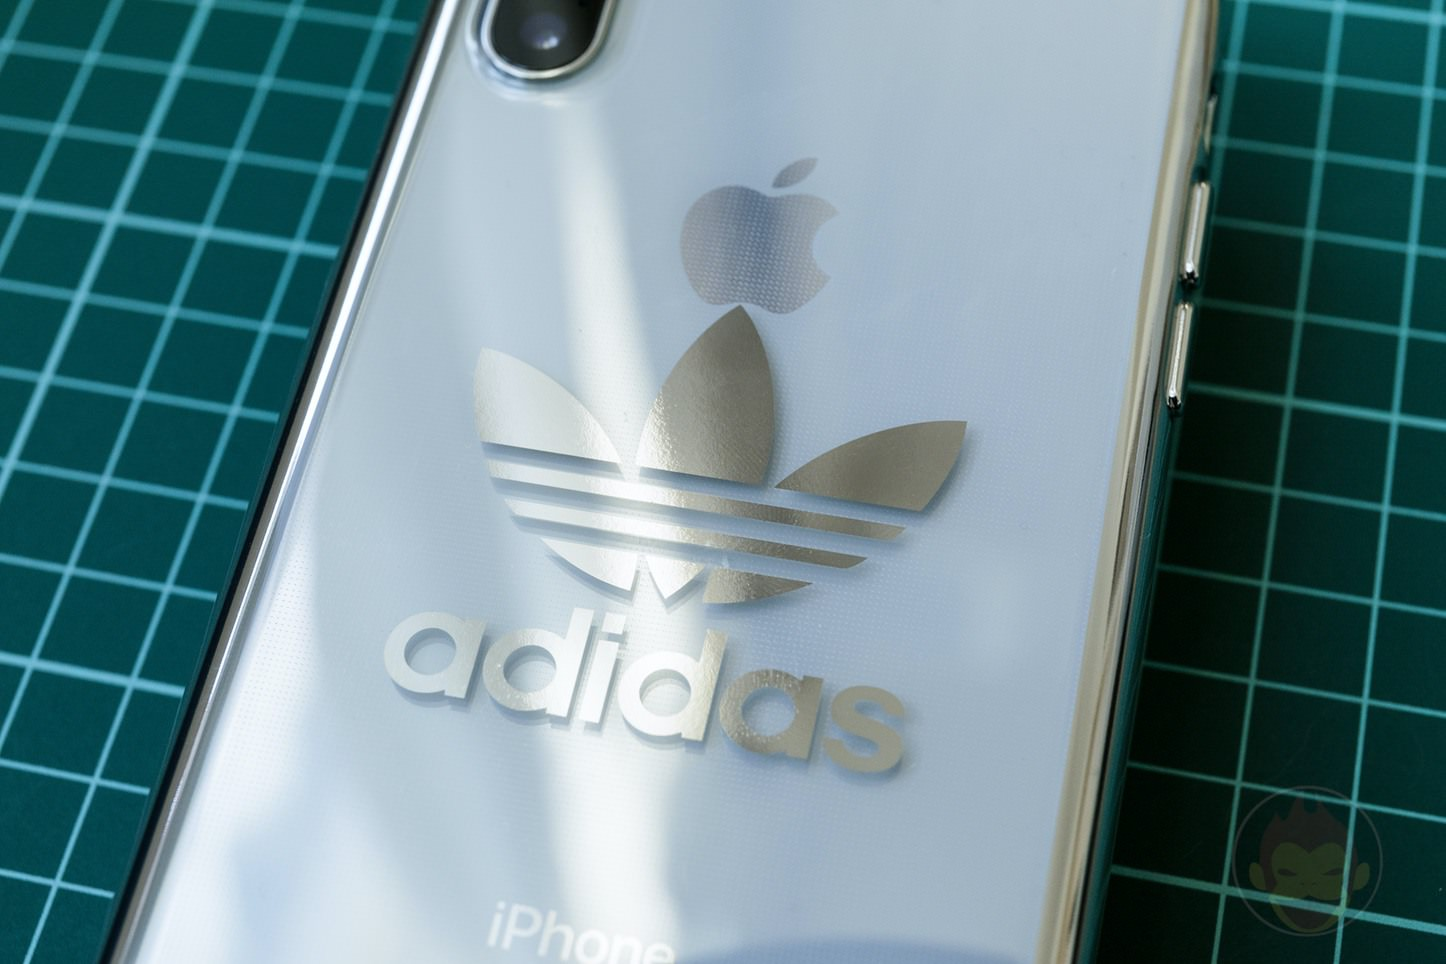 Adidas-Original-iPhoneX-Clear-Case-02.jpg